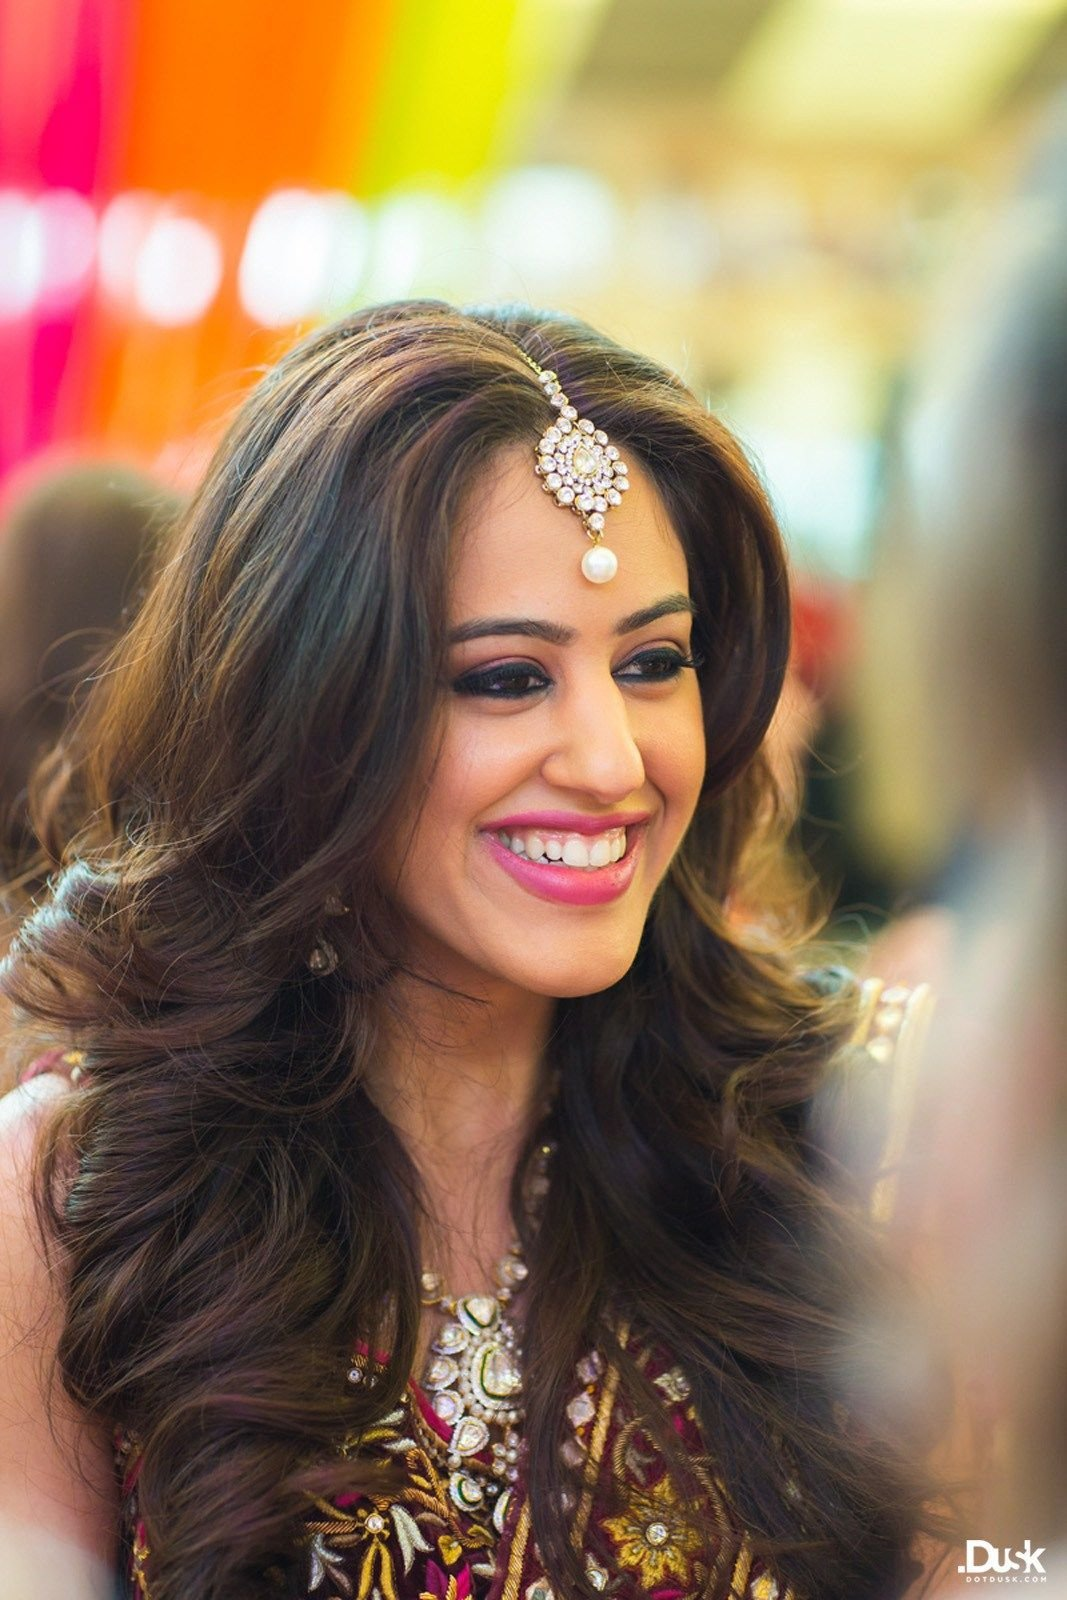 The Best Mehendi Makeup And Hair Roshni Rohan Indian Wedding Pictures